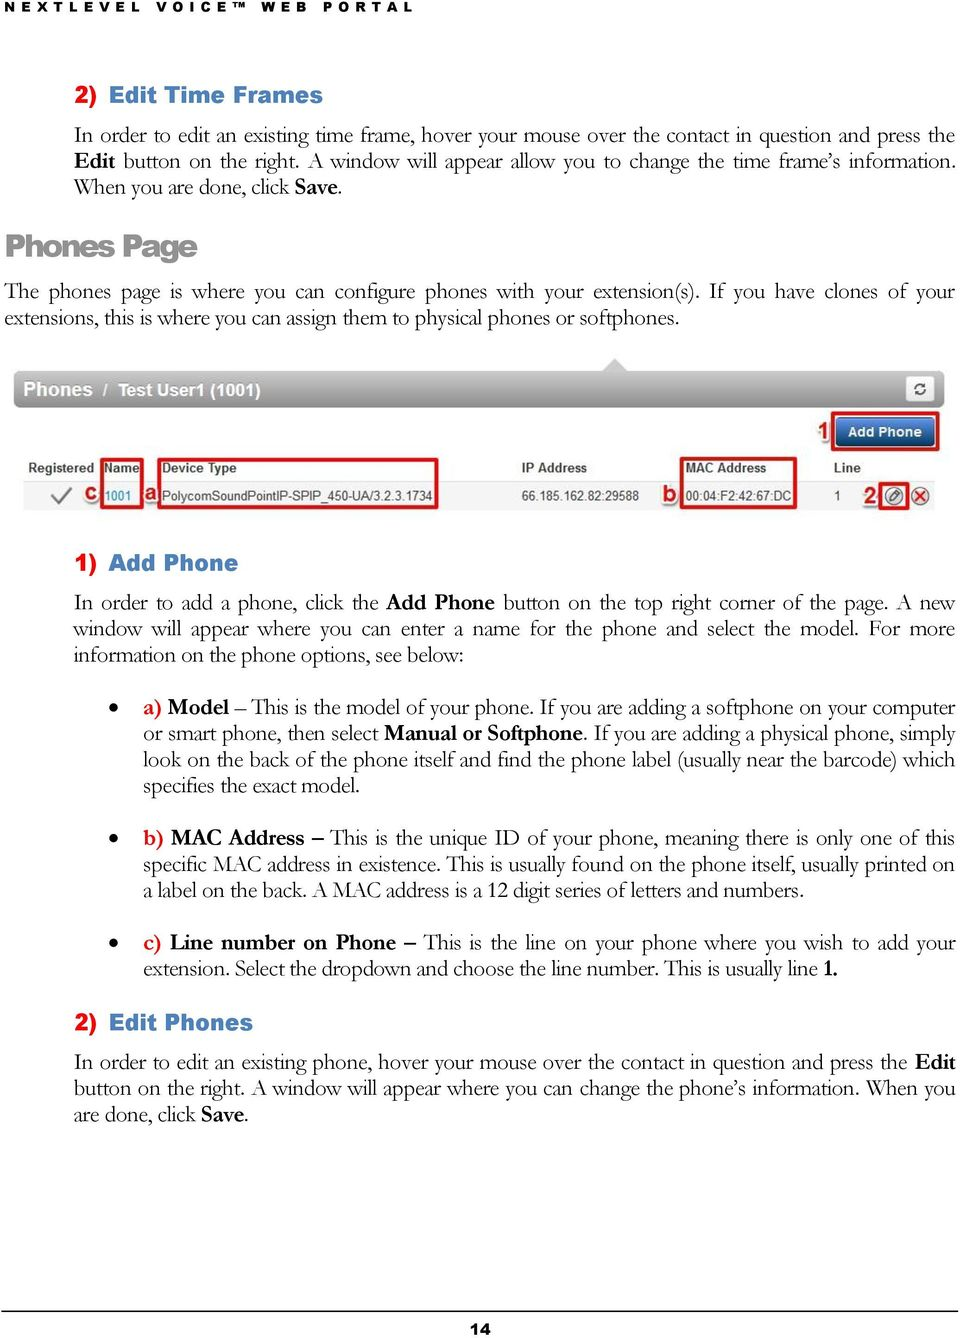 If you have clones of your extensions, this is where you can assign them to physical phones or softphones.